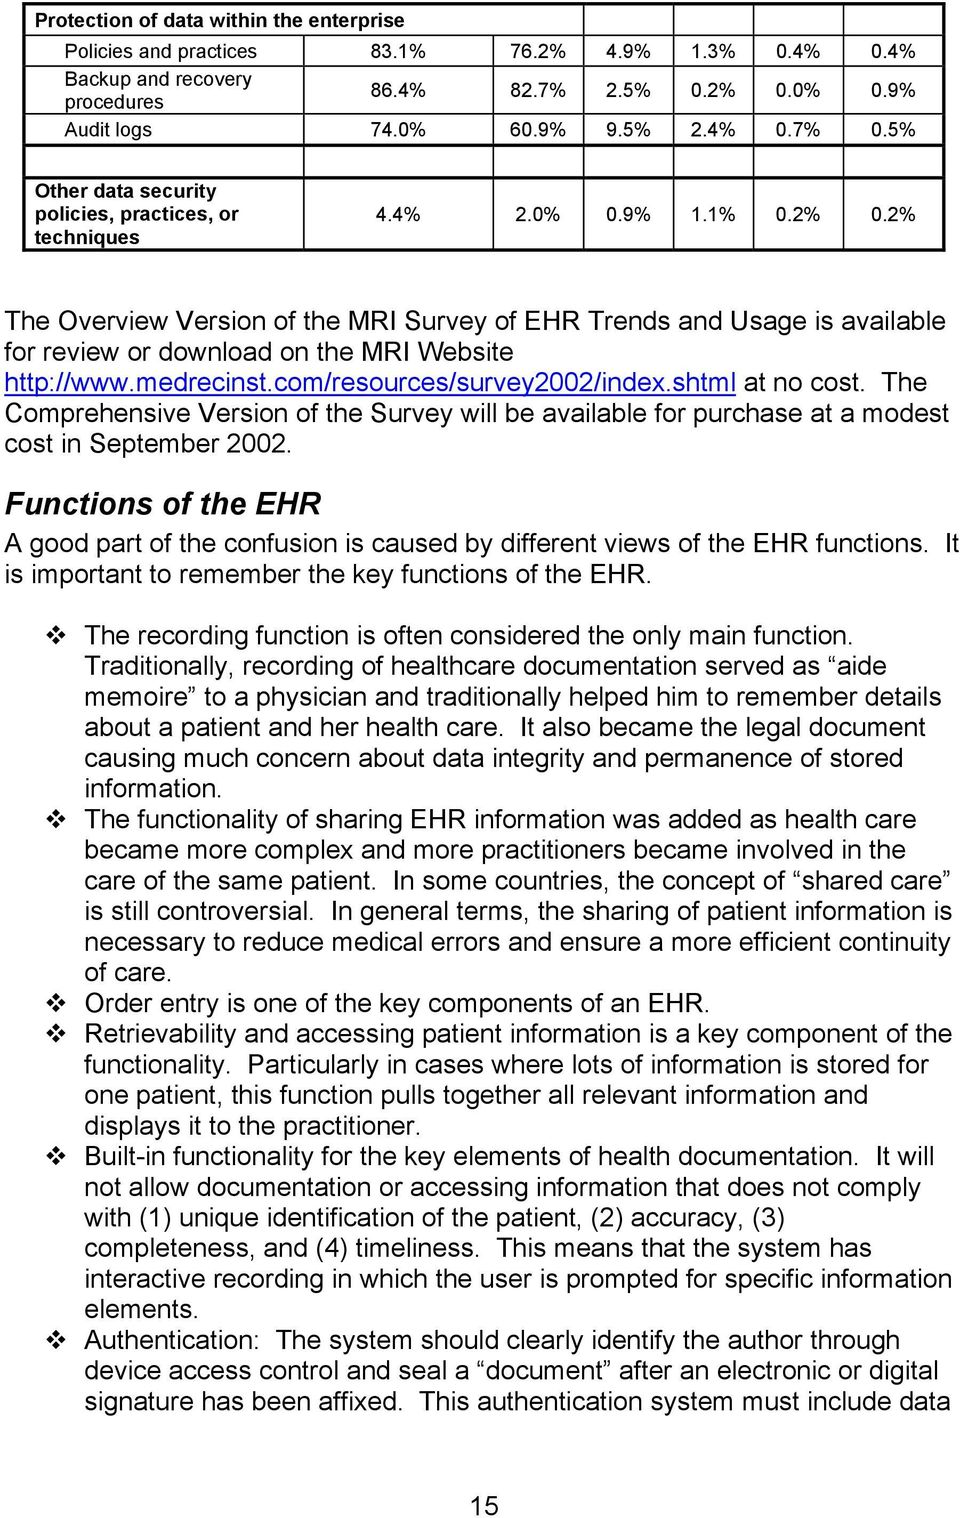 2% The Overview Version of the MRI Survey of EHR Trends and Usage is available for review or download on the MRI Website http://www.medrecinst.com/resources/survey2002/index.shtml at no cost.